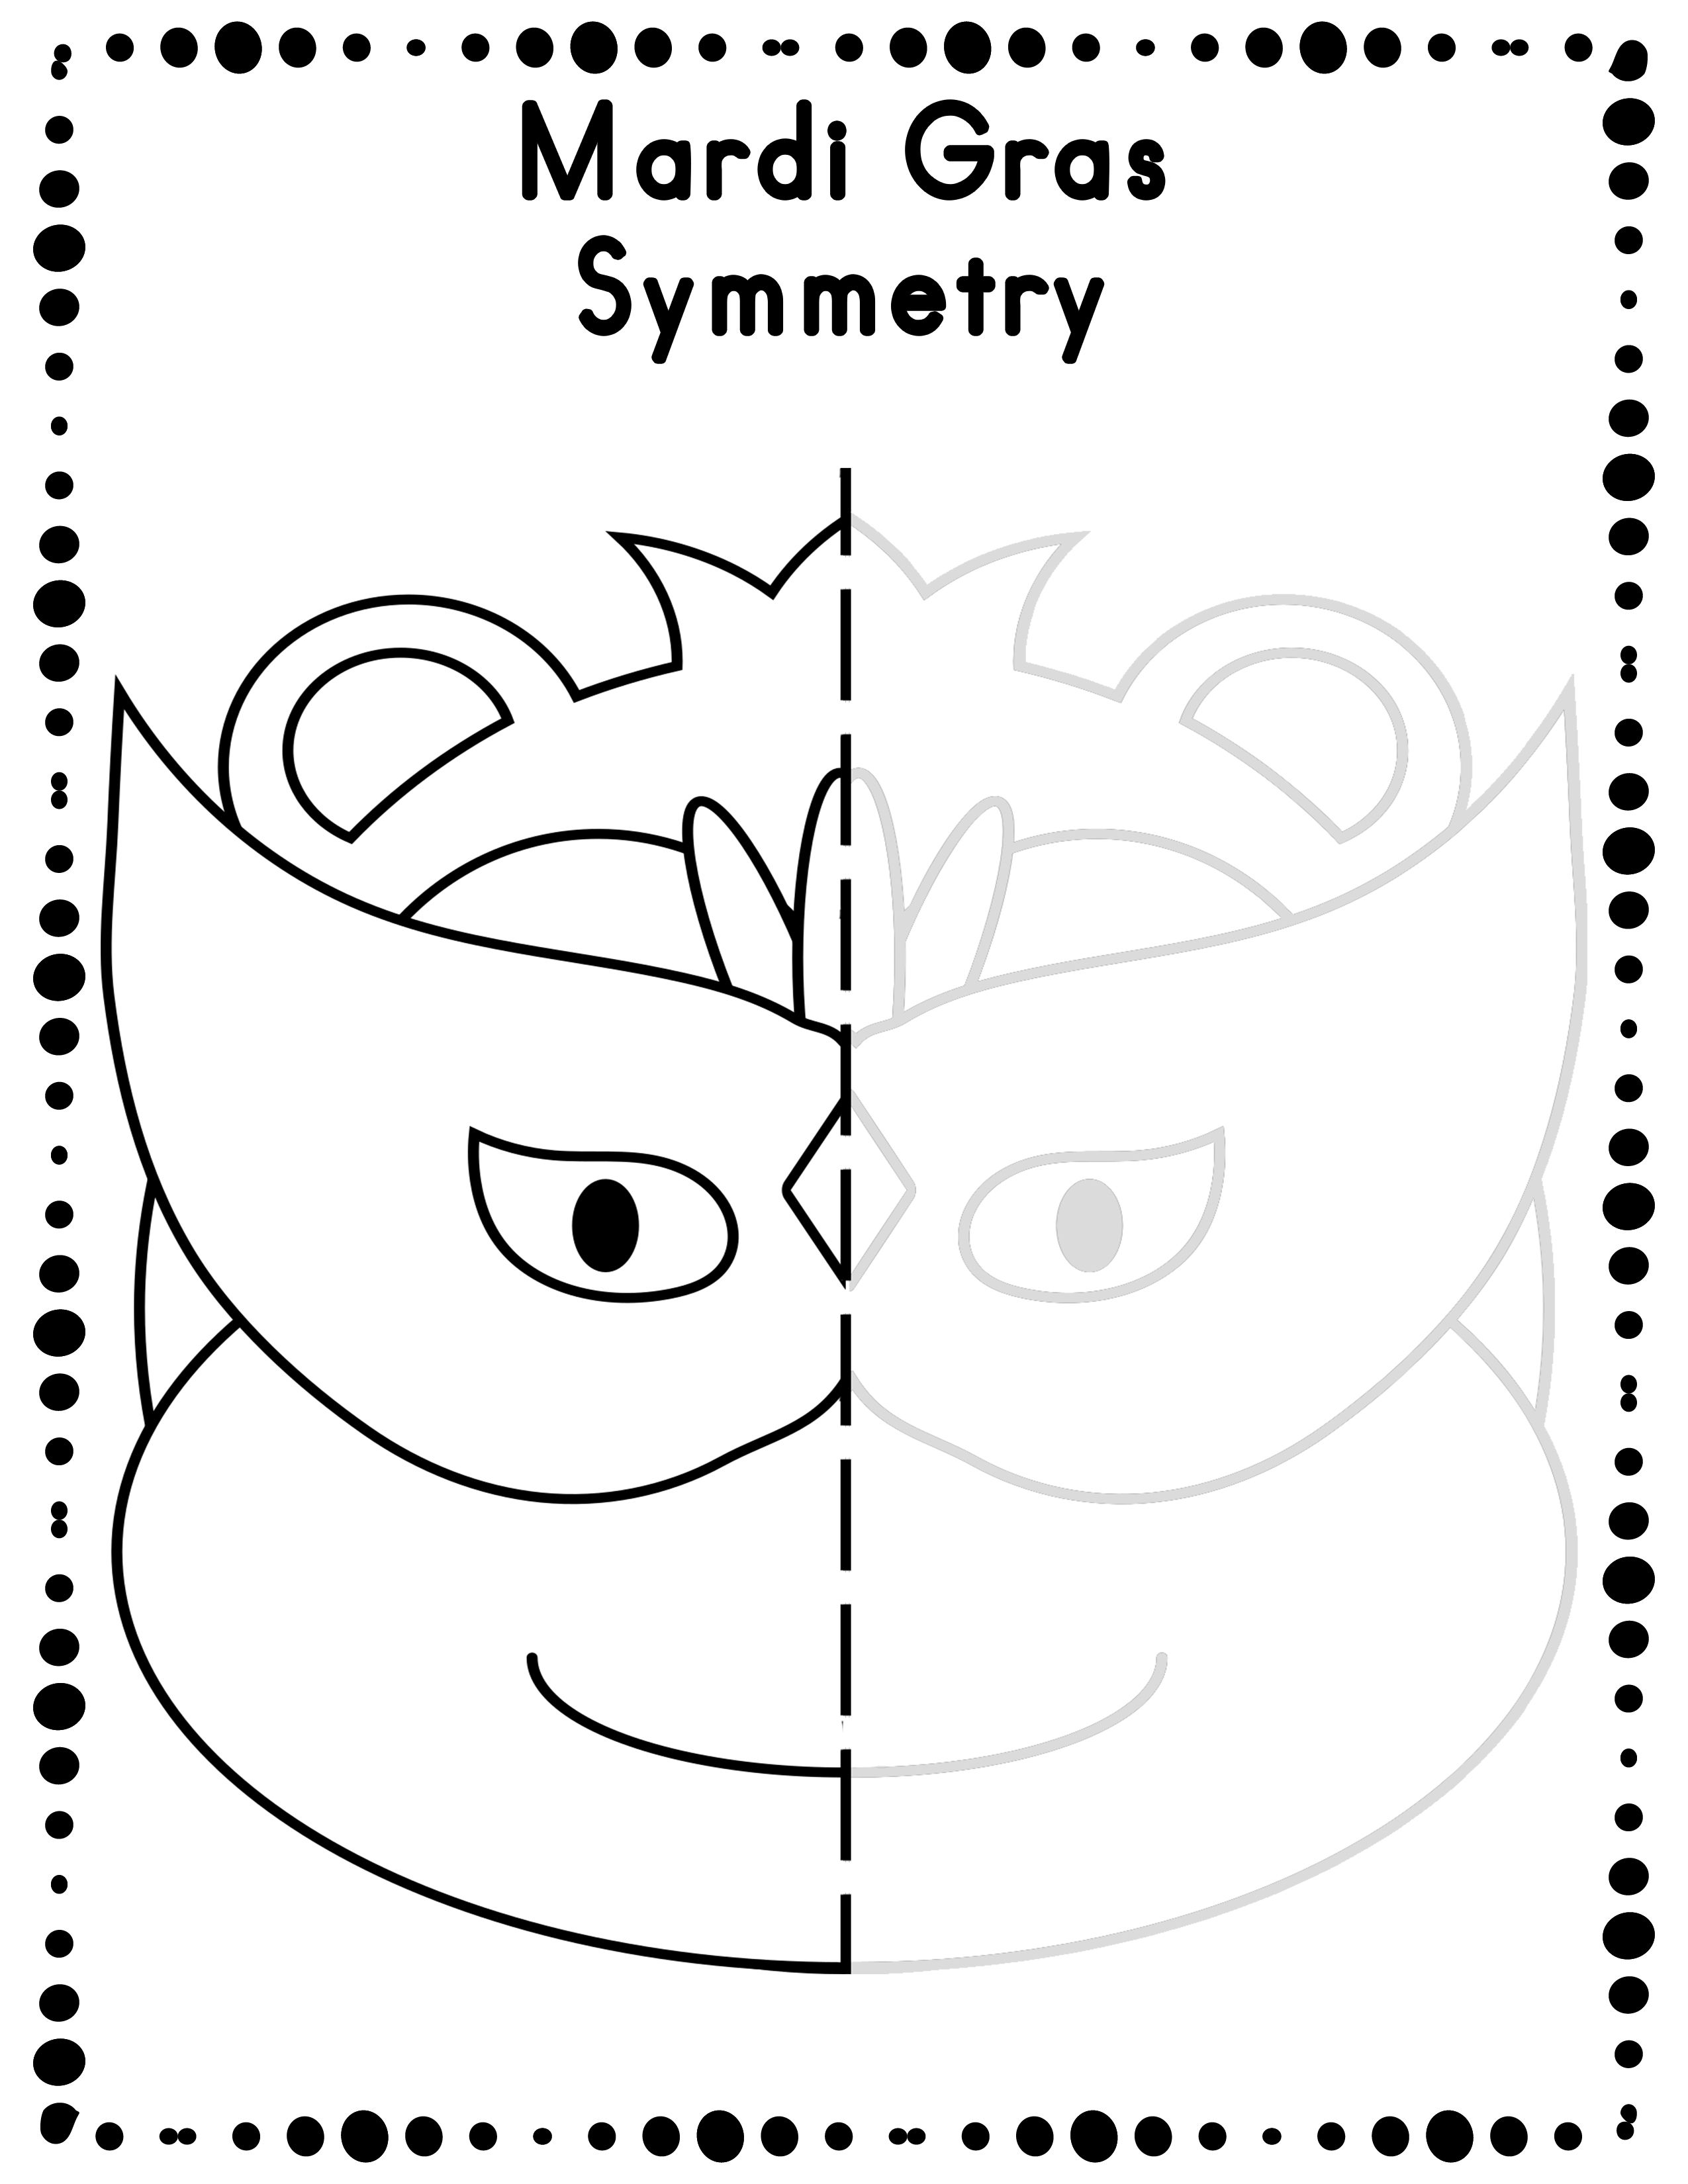 worksheet Mardi Gras Worksheets mardi gras symmetry drawing activity for art and math worksheets